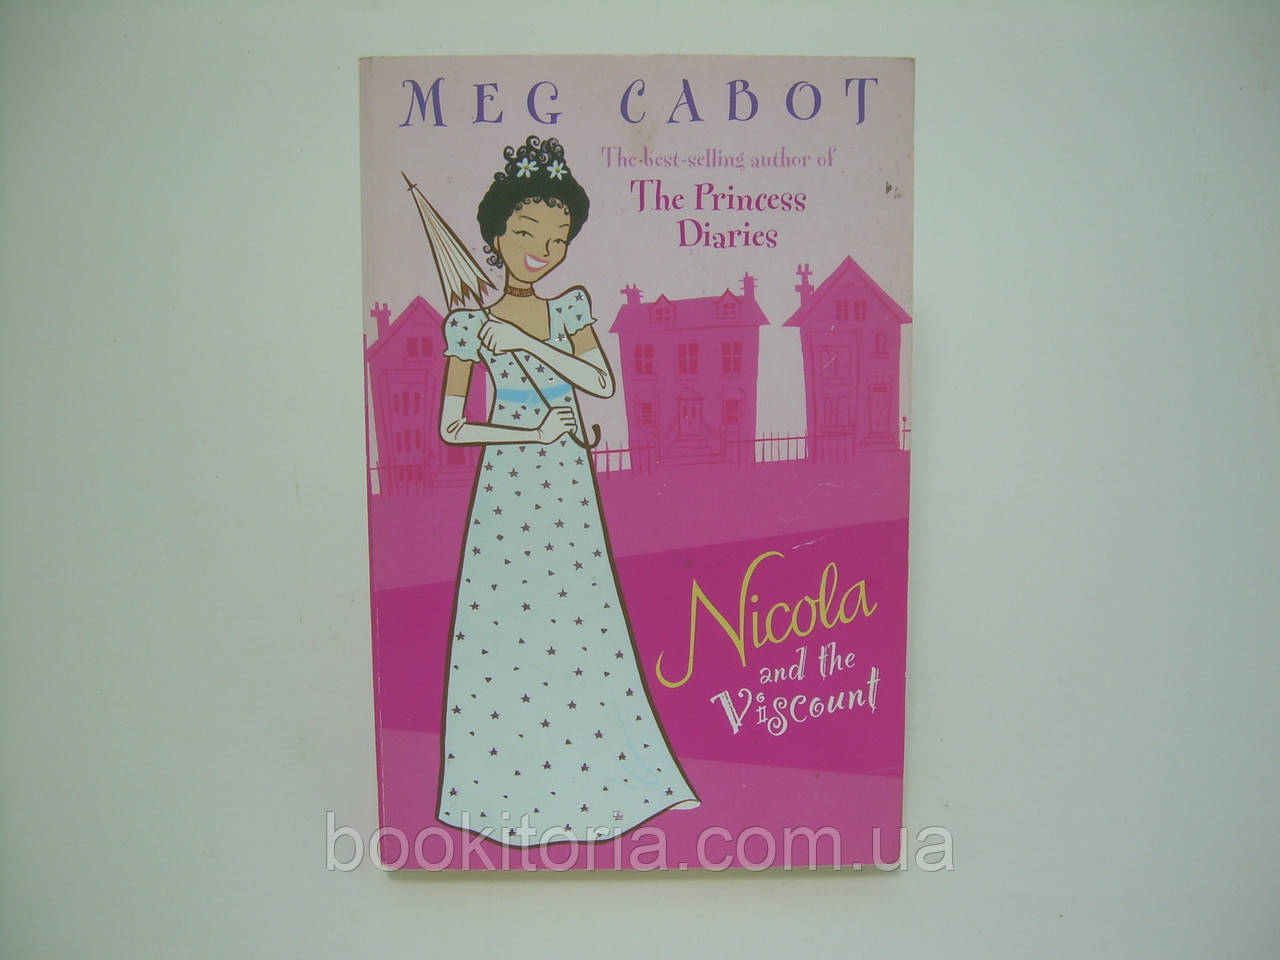 Cabot Meg. Nicola and the Viscount. Мэг Кэбот. Никола и виконт (б/у).